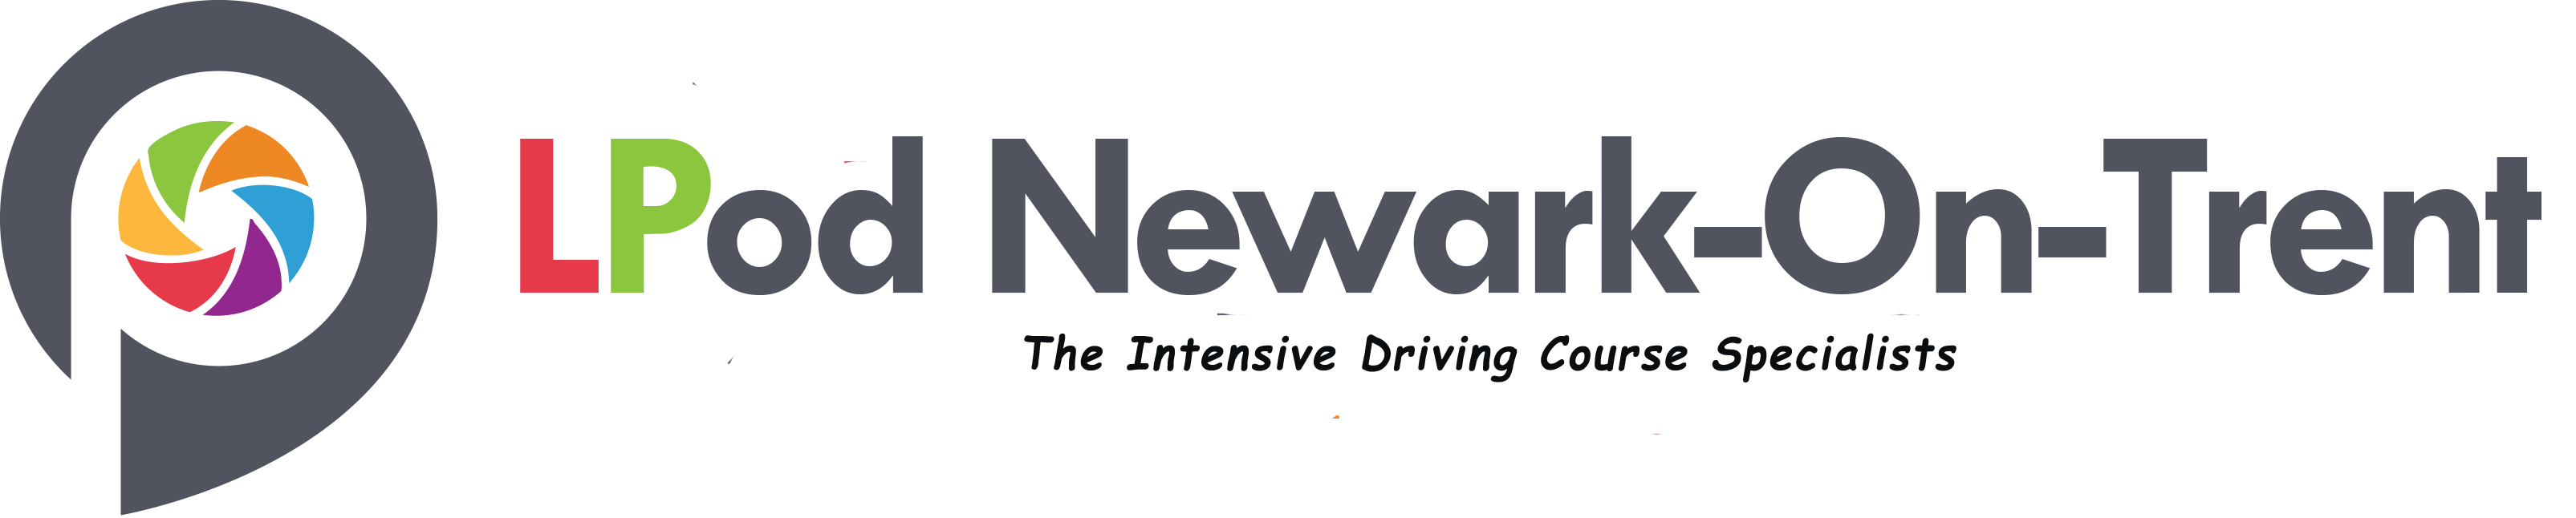 Intensive driving courses newark-on-trent, intensive driving lessons newark-on-trent